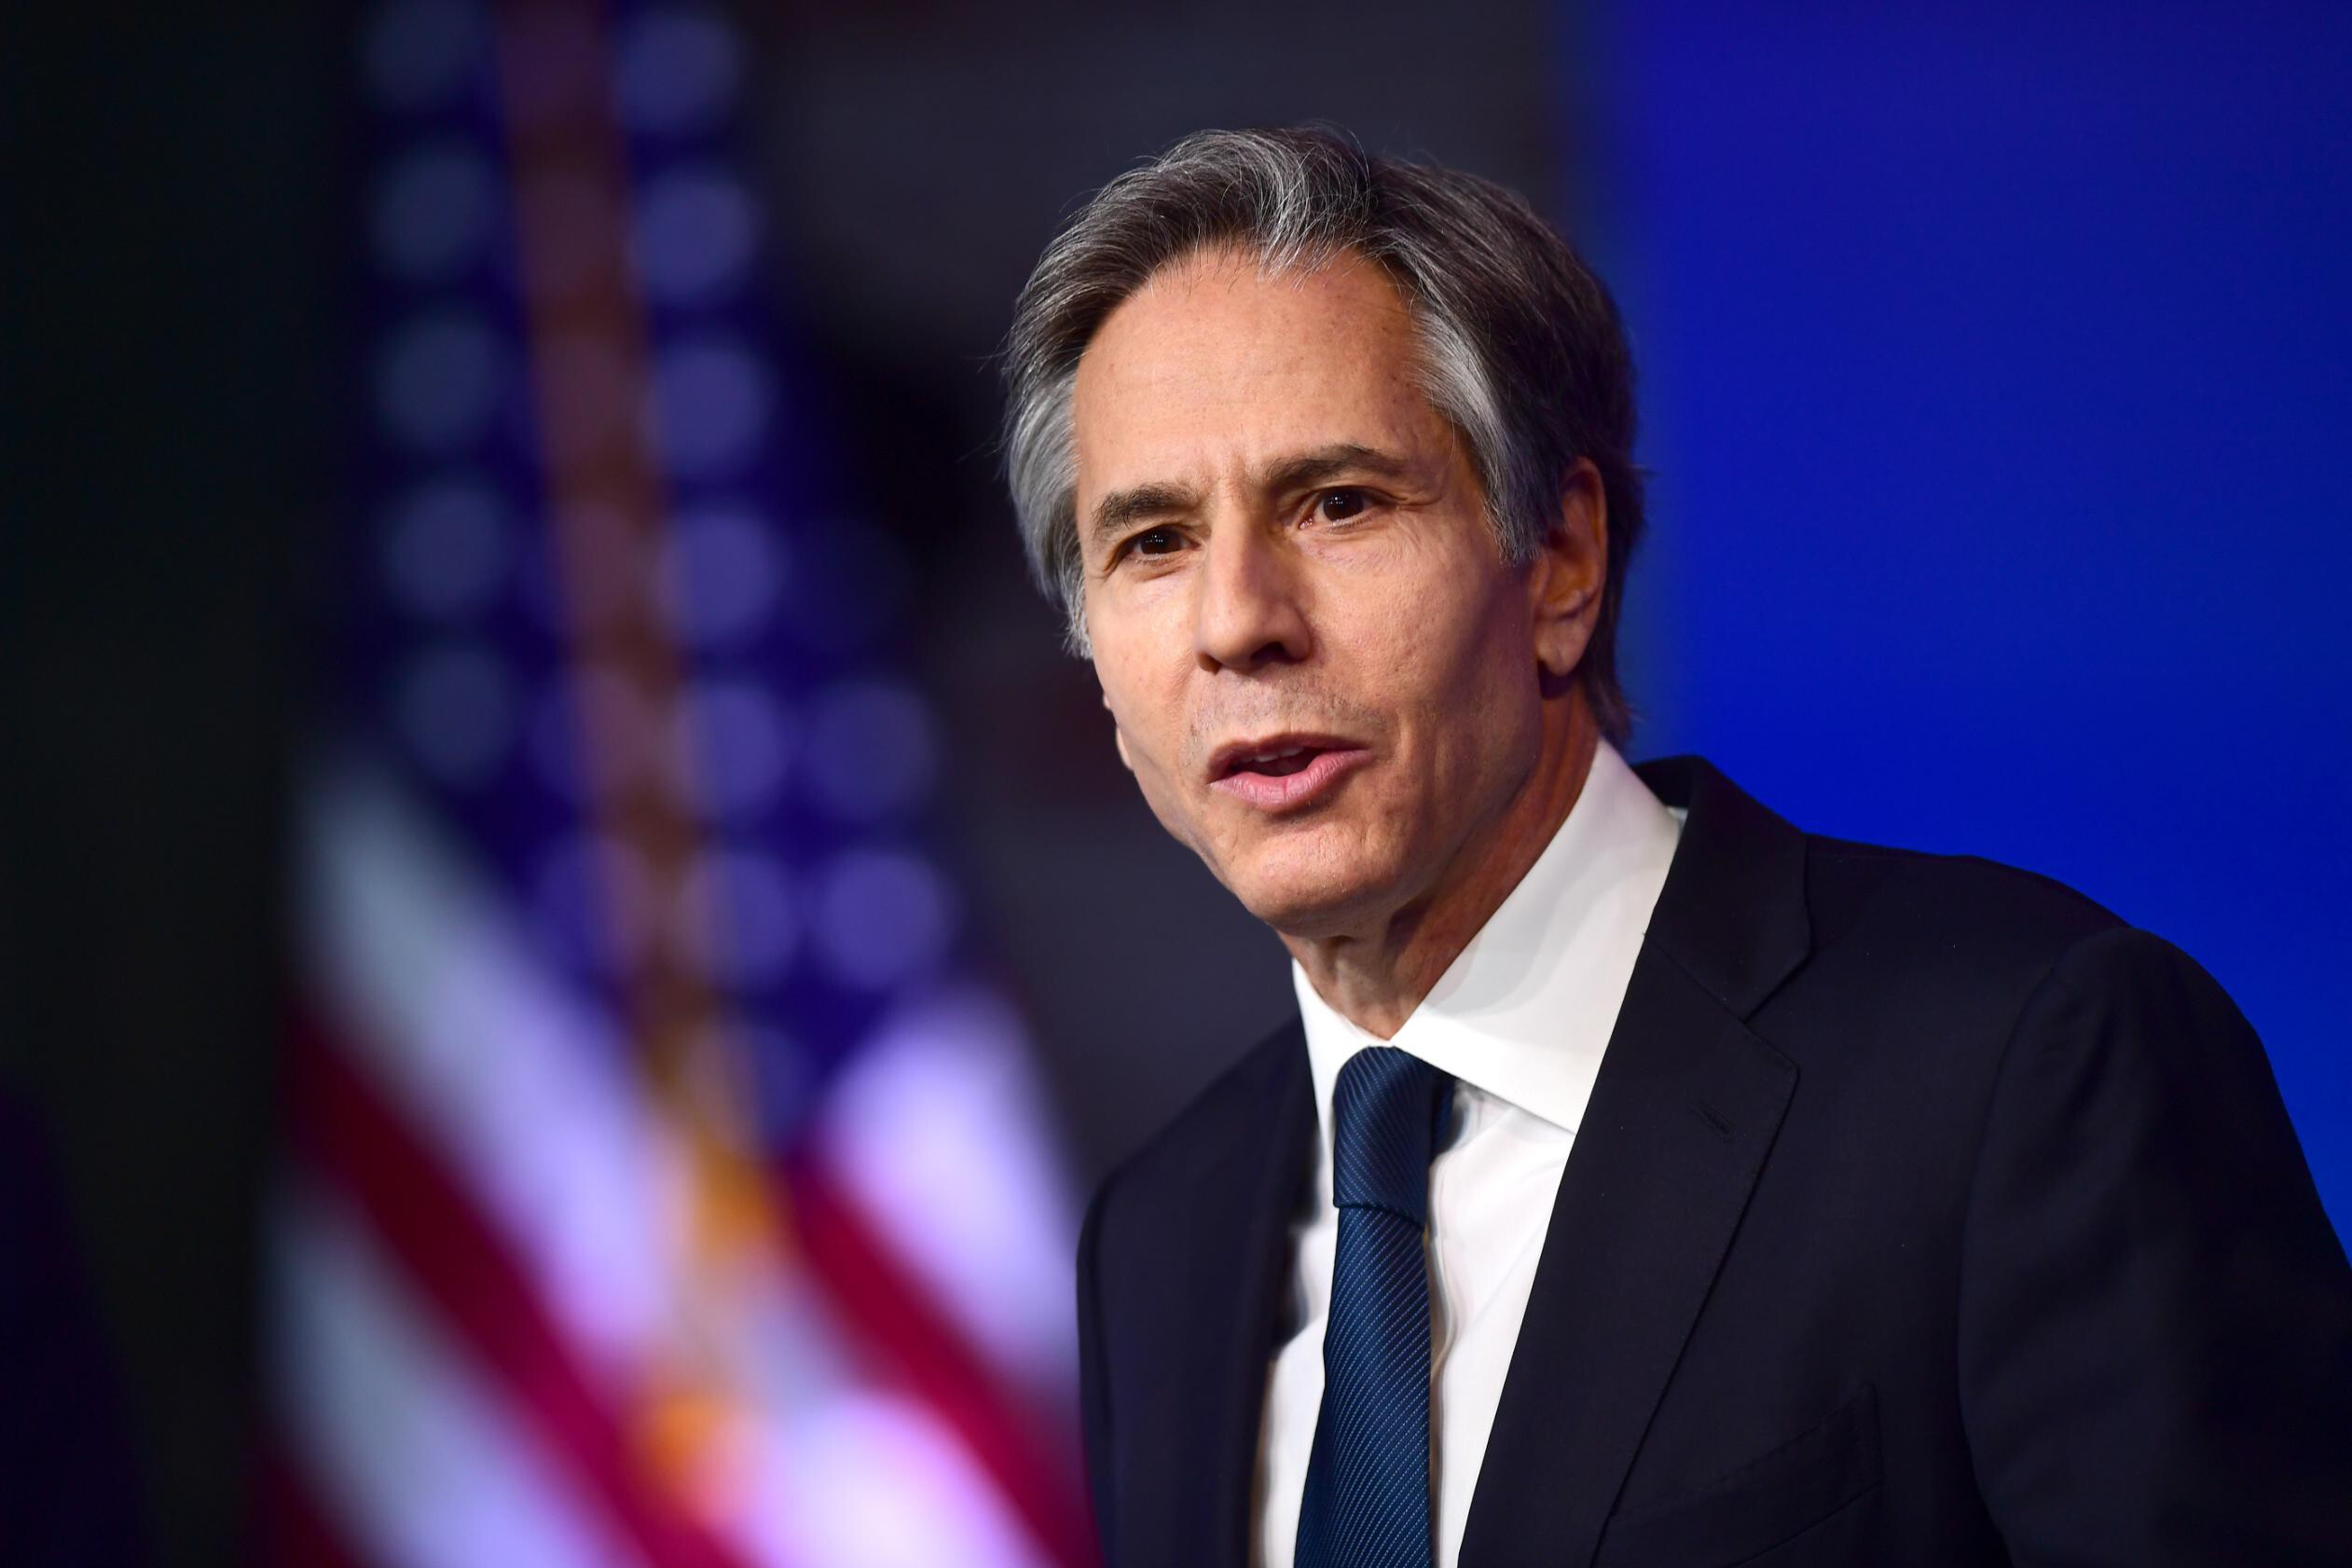 Blinken lays out pillars for cyber diplomacy, says 'our democratic values and way of life' are at stake